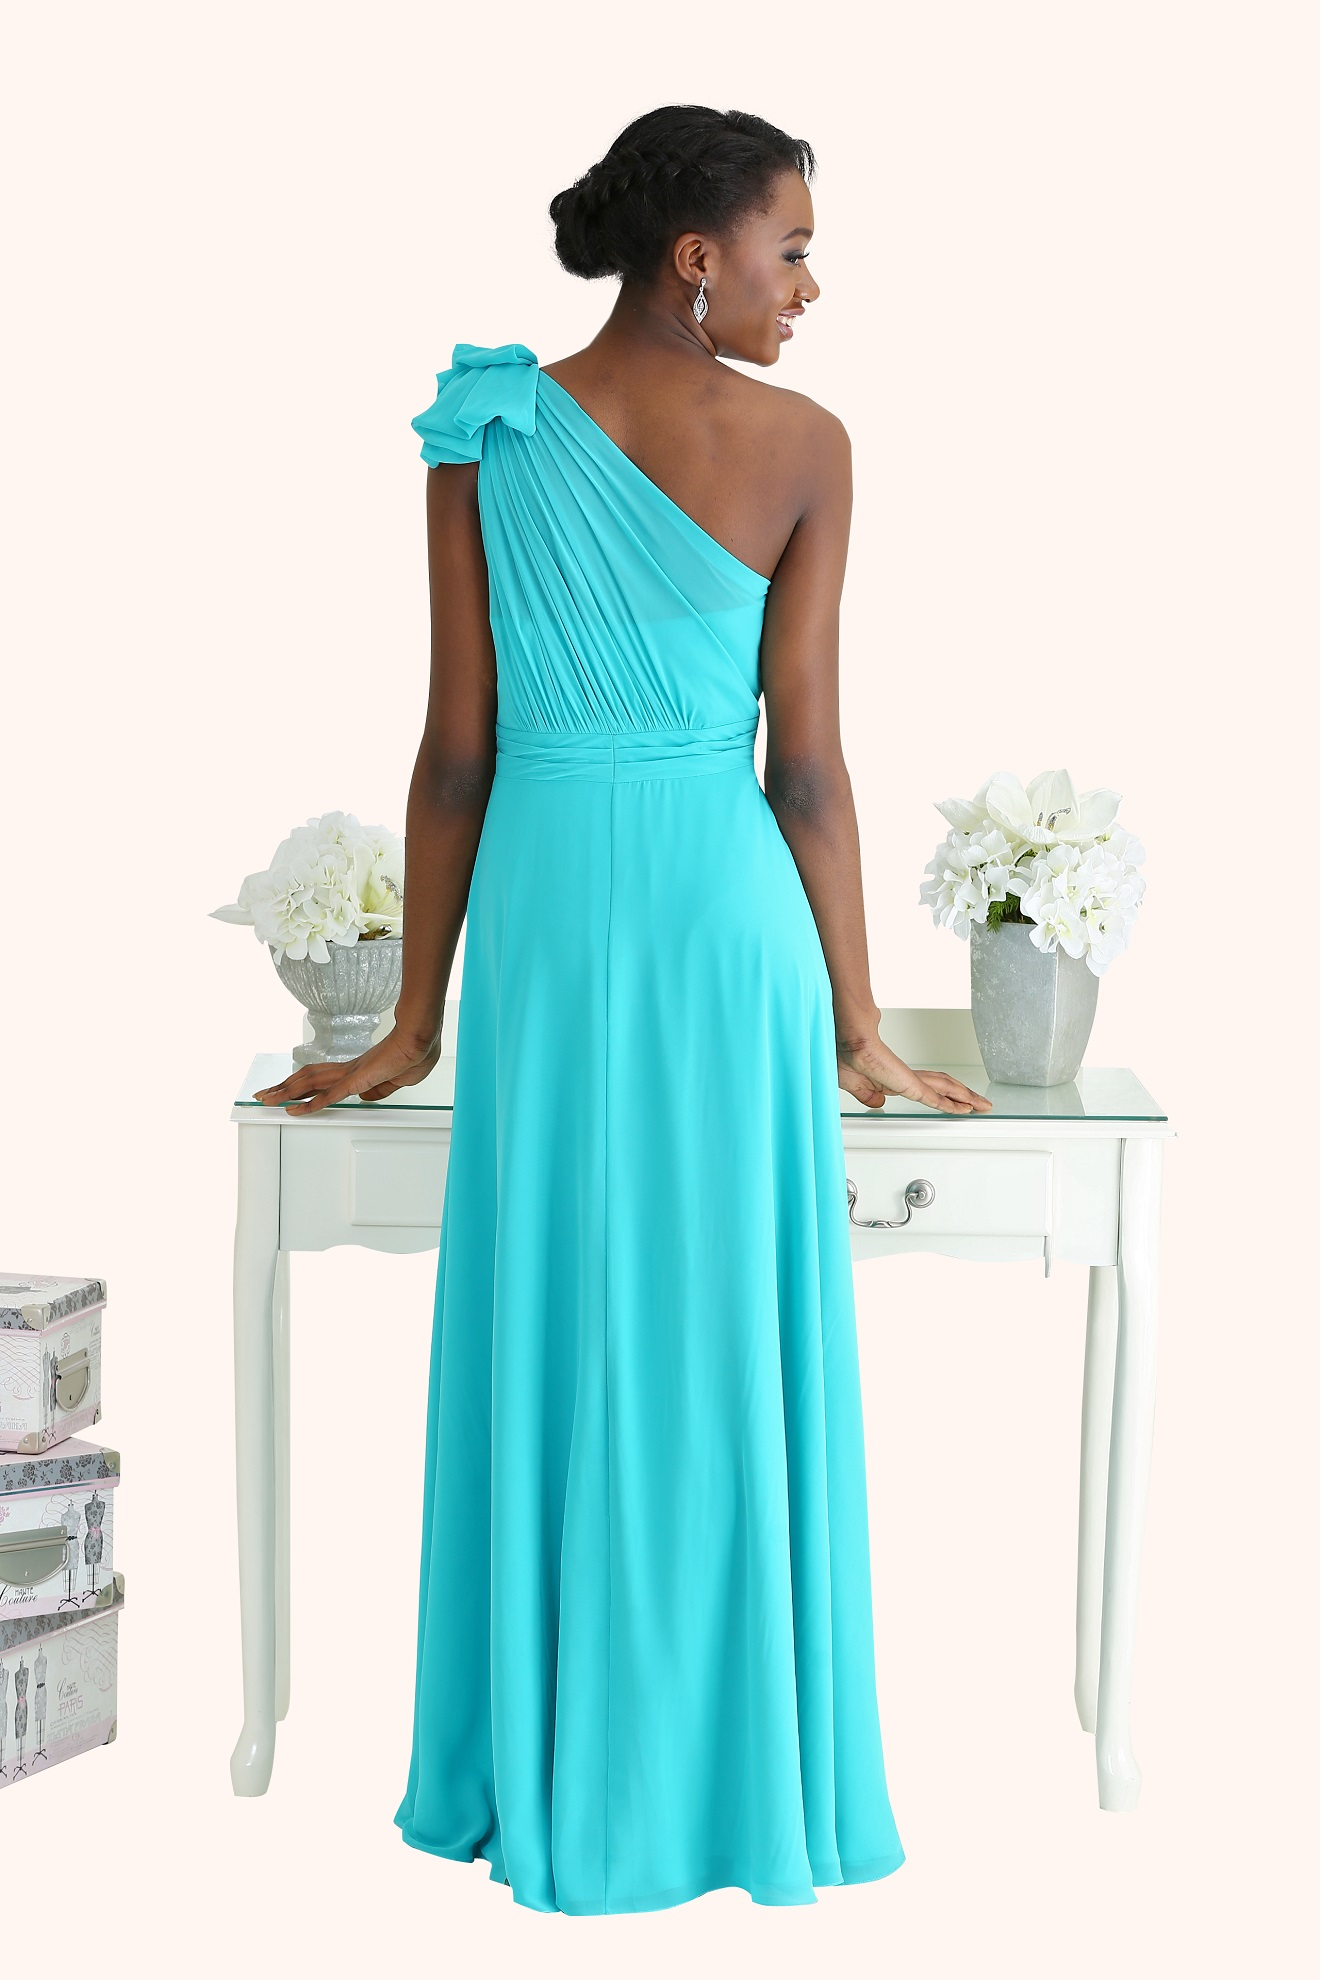 Tiffany one shoulder chiffon bridesmaid dress for Wedding dresses with tiffany blue